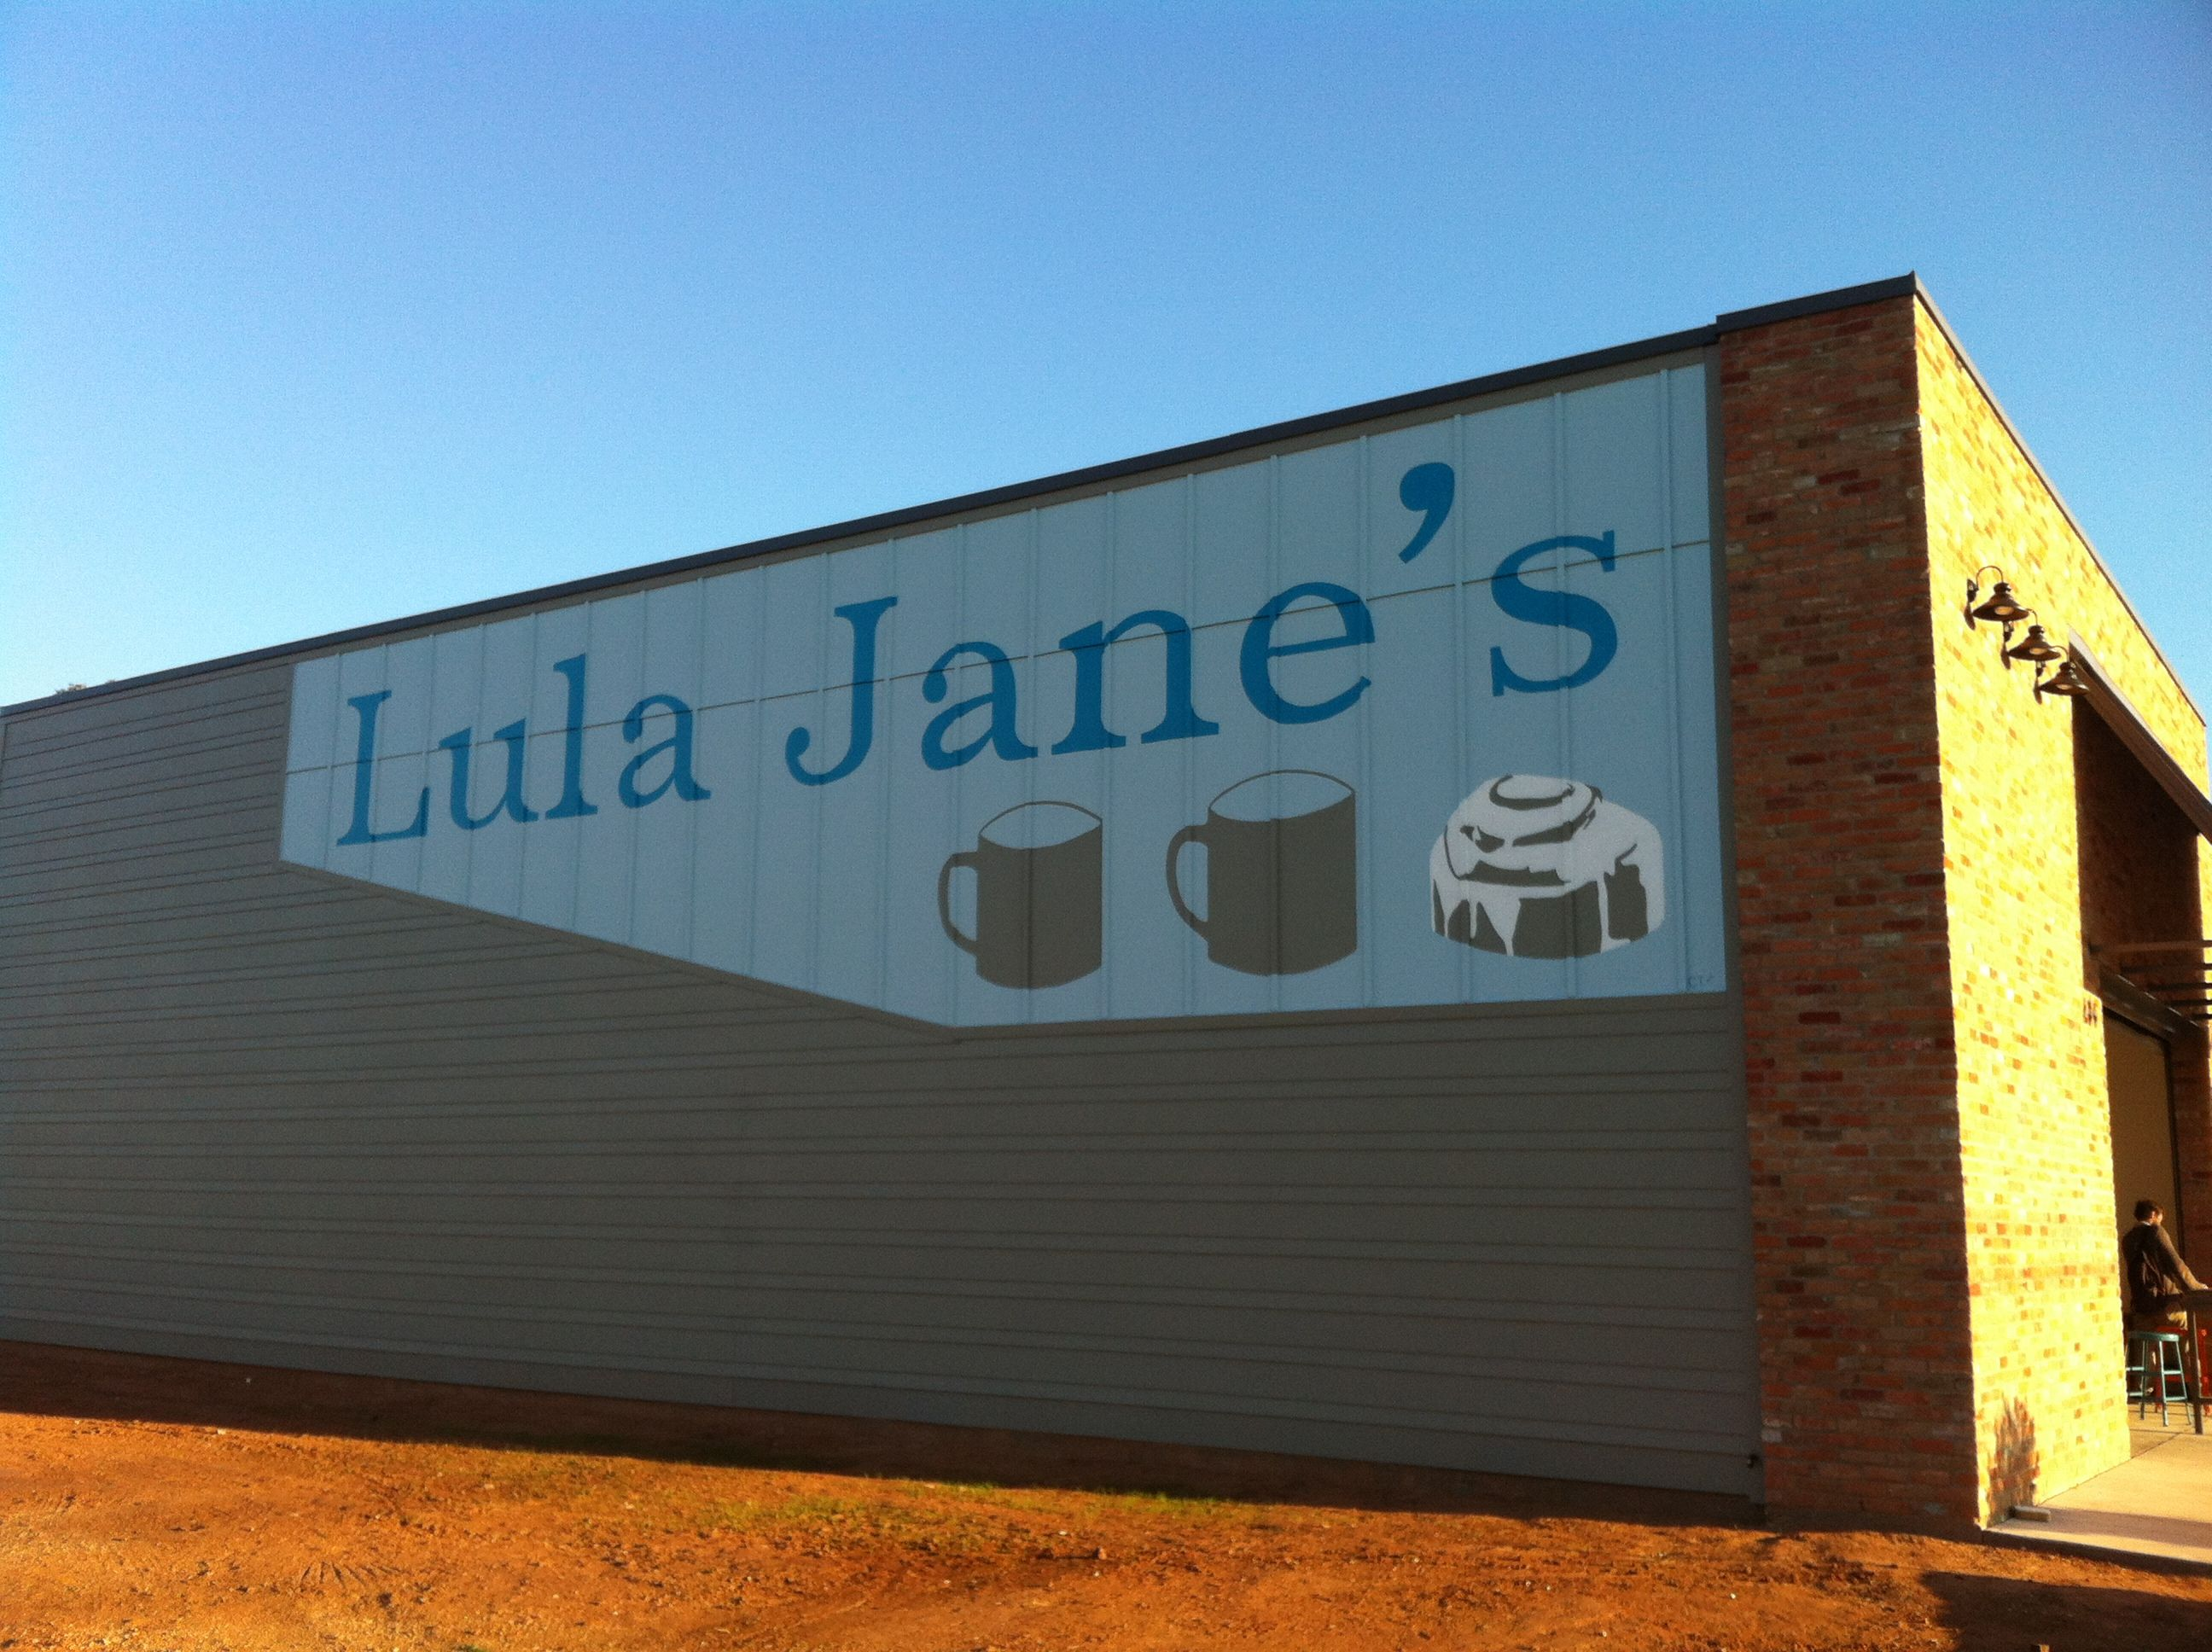 Image of the restaurant Lula Jane's in Waco, TX. The name of the restaurant is painted in blue on the side of a building, and there are two mugs and a cinnamon roll underneath.